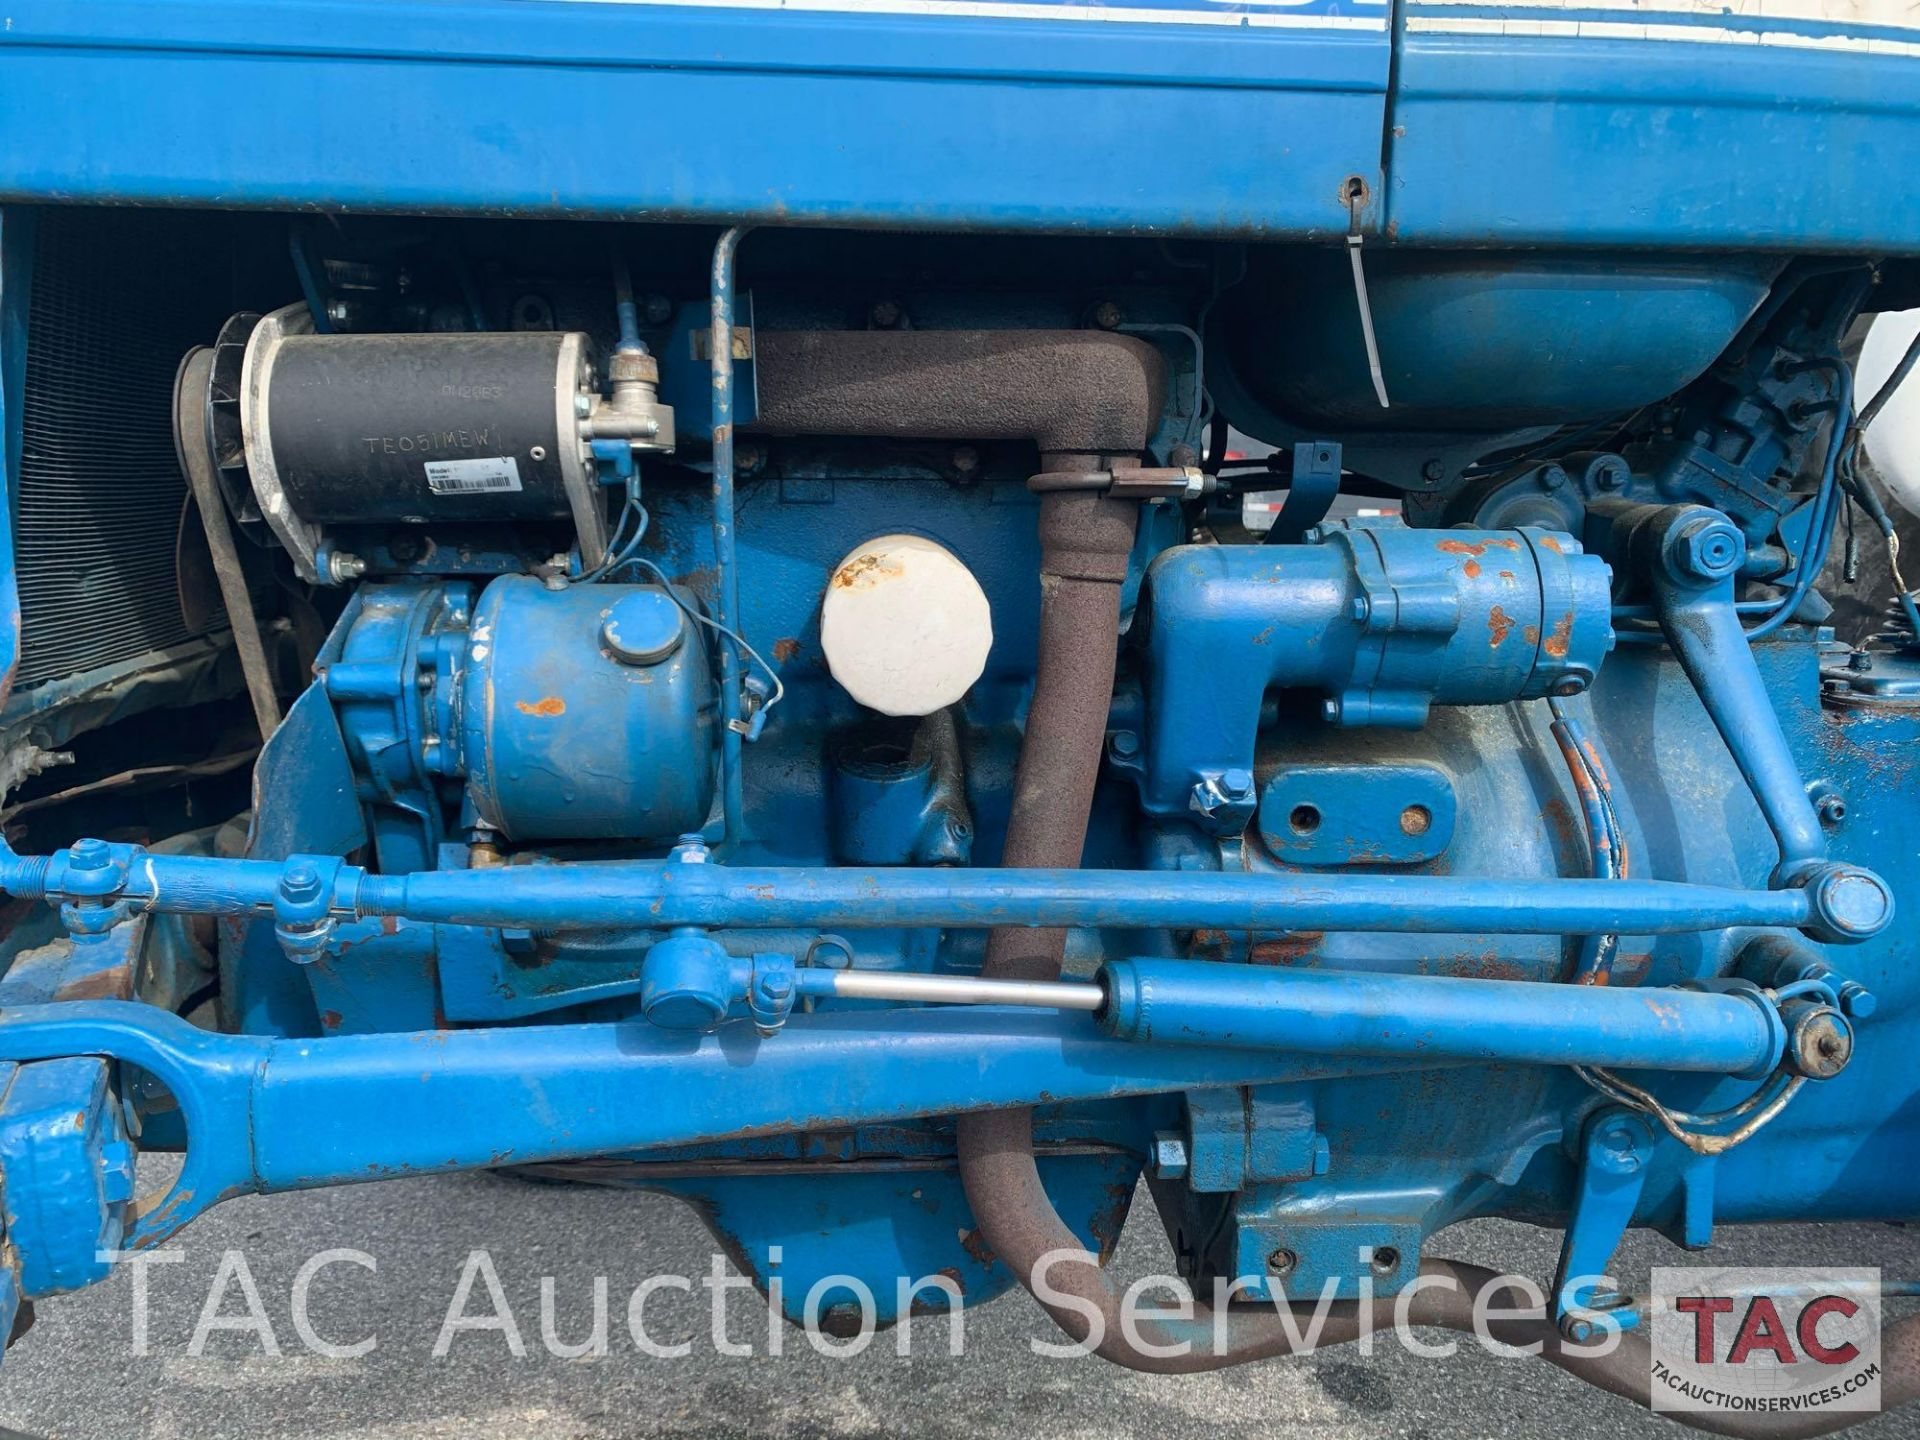 Ford 2000 Farm Tractor - Image 14 of 28